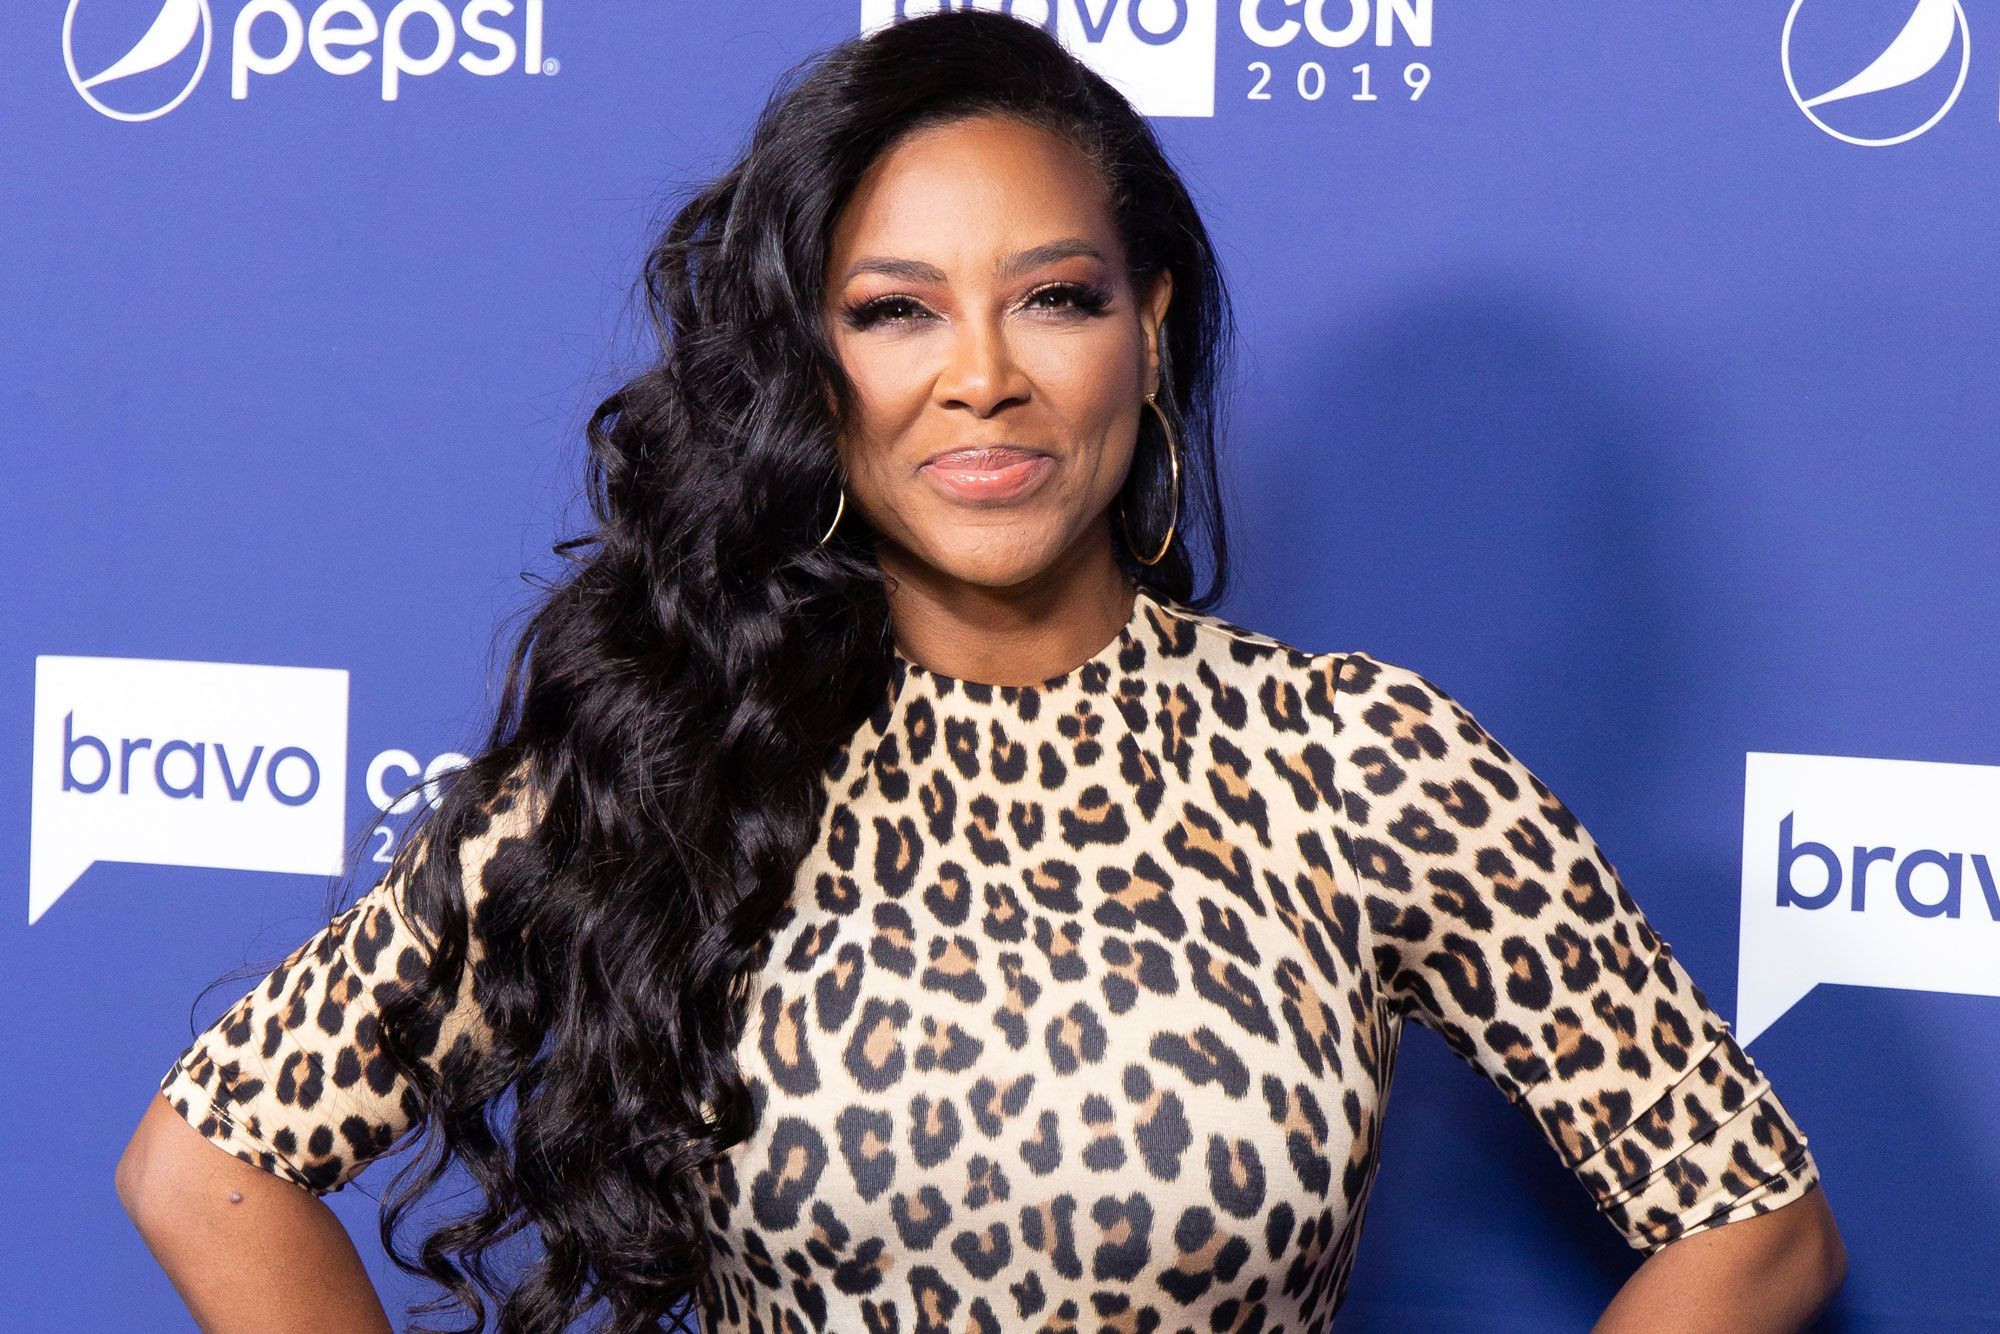 Kenya Moore Supports The People In Nigeria - See Her Message